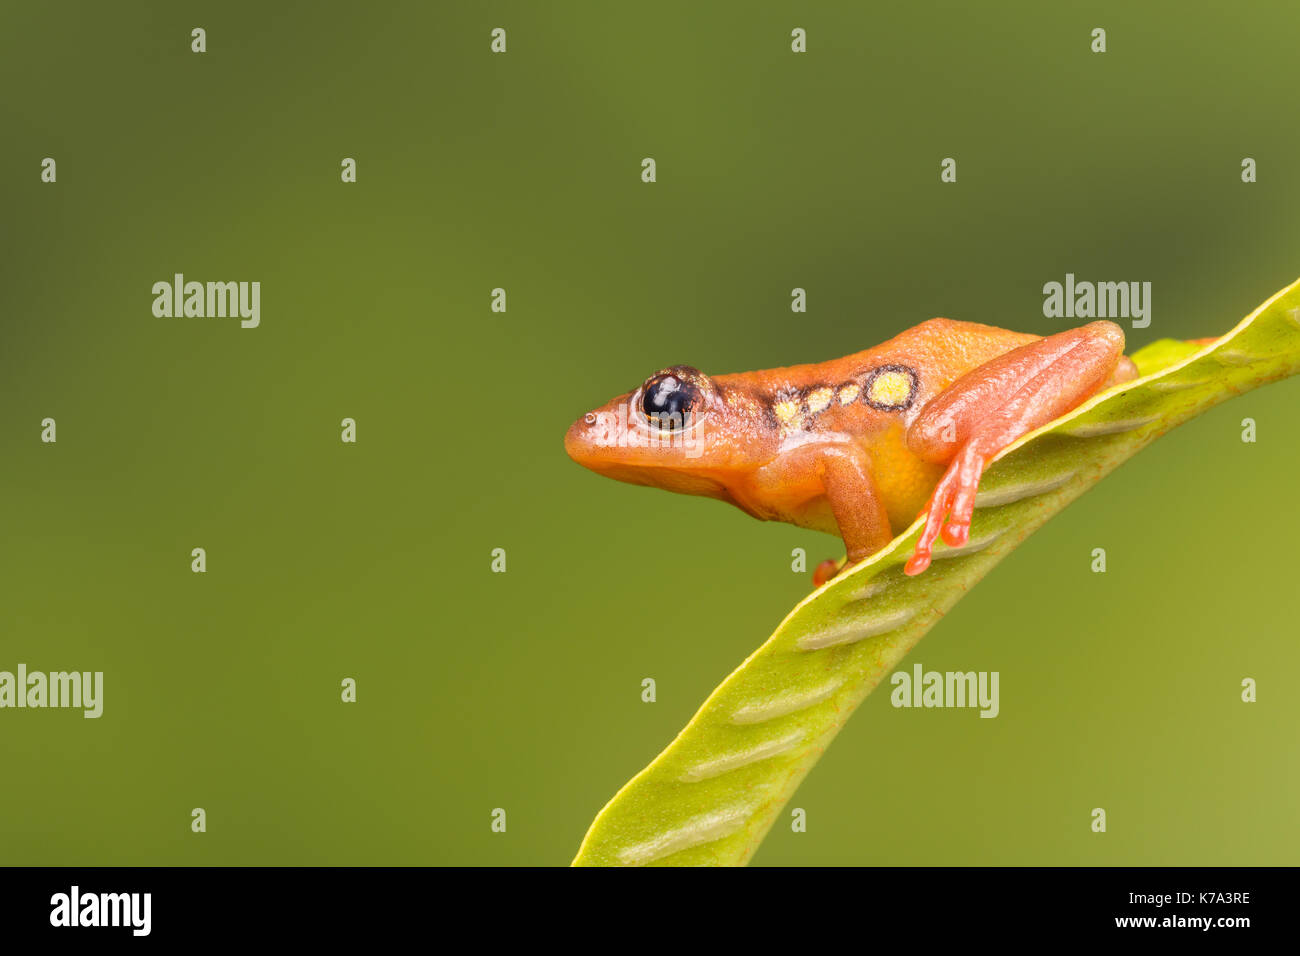 Golden orange lumineux grenouille carex assis sur une feuille verte Photo Stock